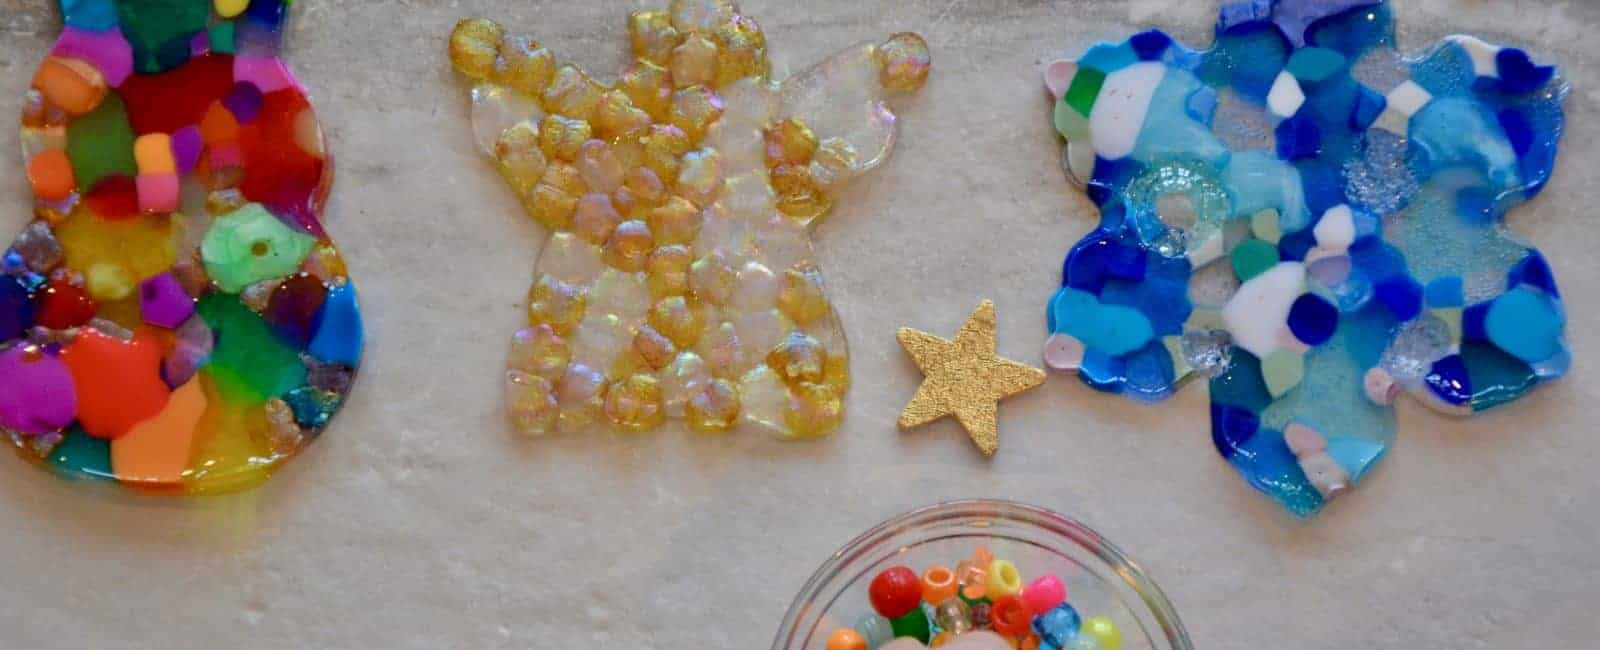 3 Simple Christmas Crafts for Your Preschooler (Part 1 of 2)